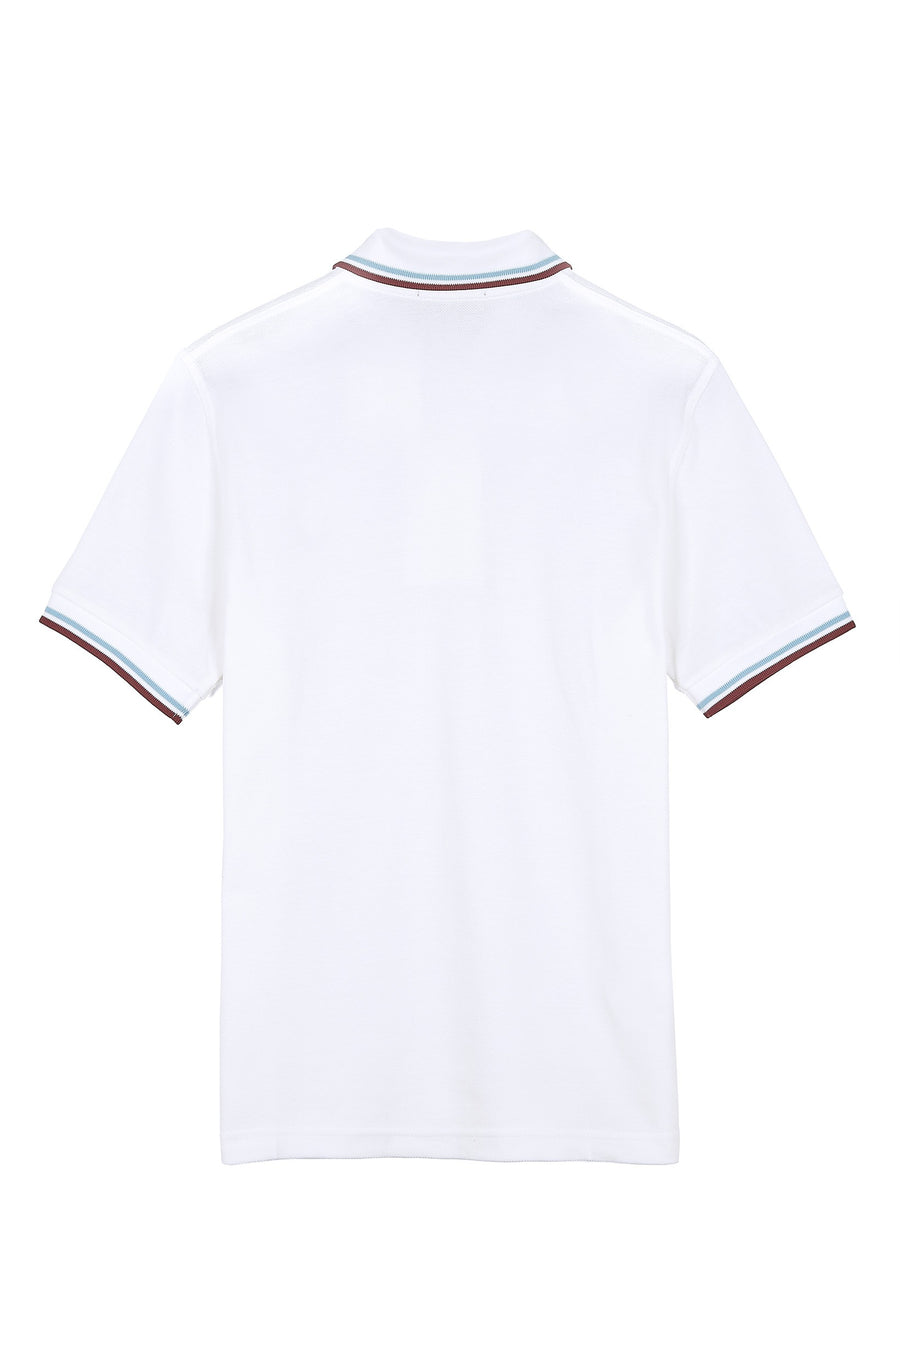 Fred Perry Twin Tipped M12 Polo Shirt - White/Ice/Maroon